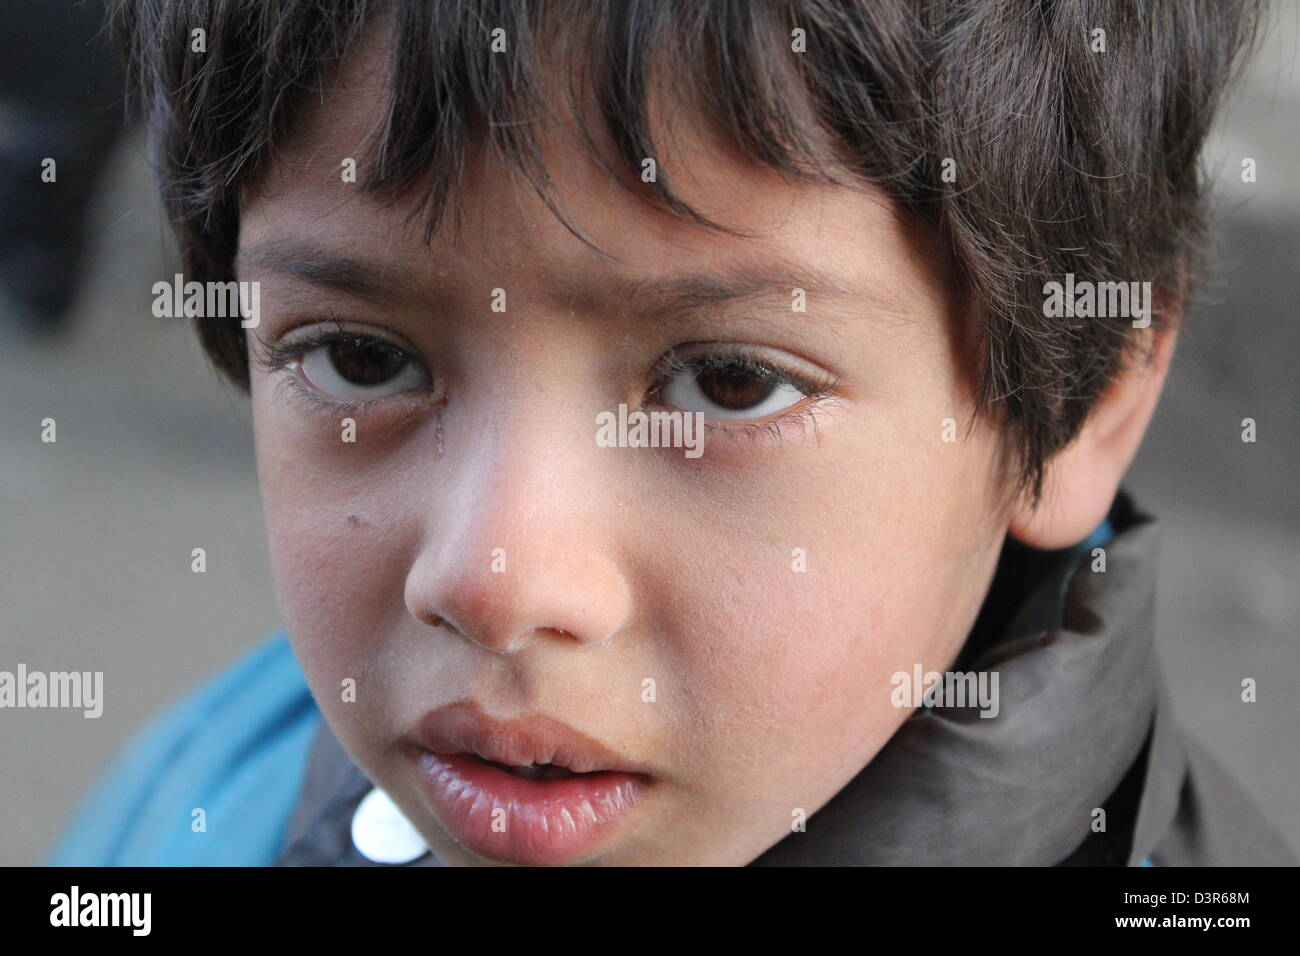 A young boy begs for money outside of a market in Kabul, Afghanistan. - Stock Image